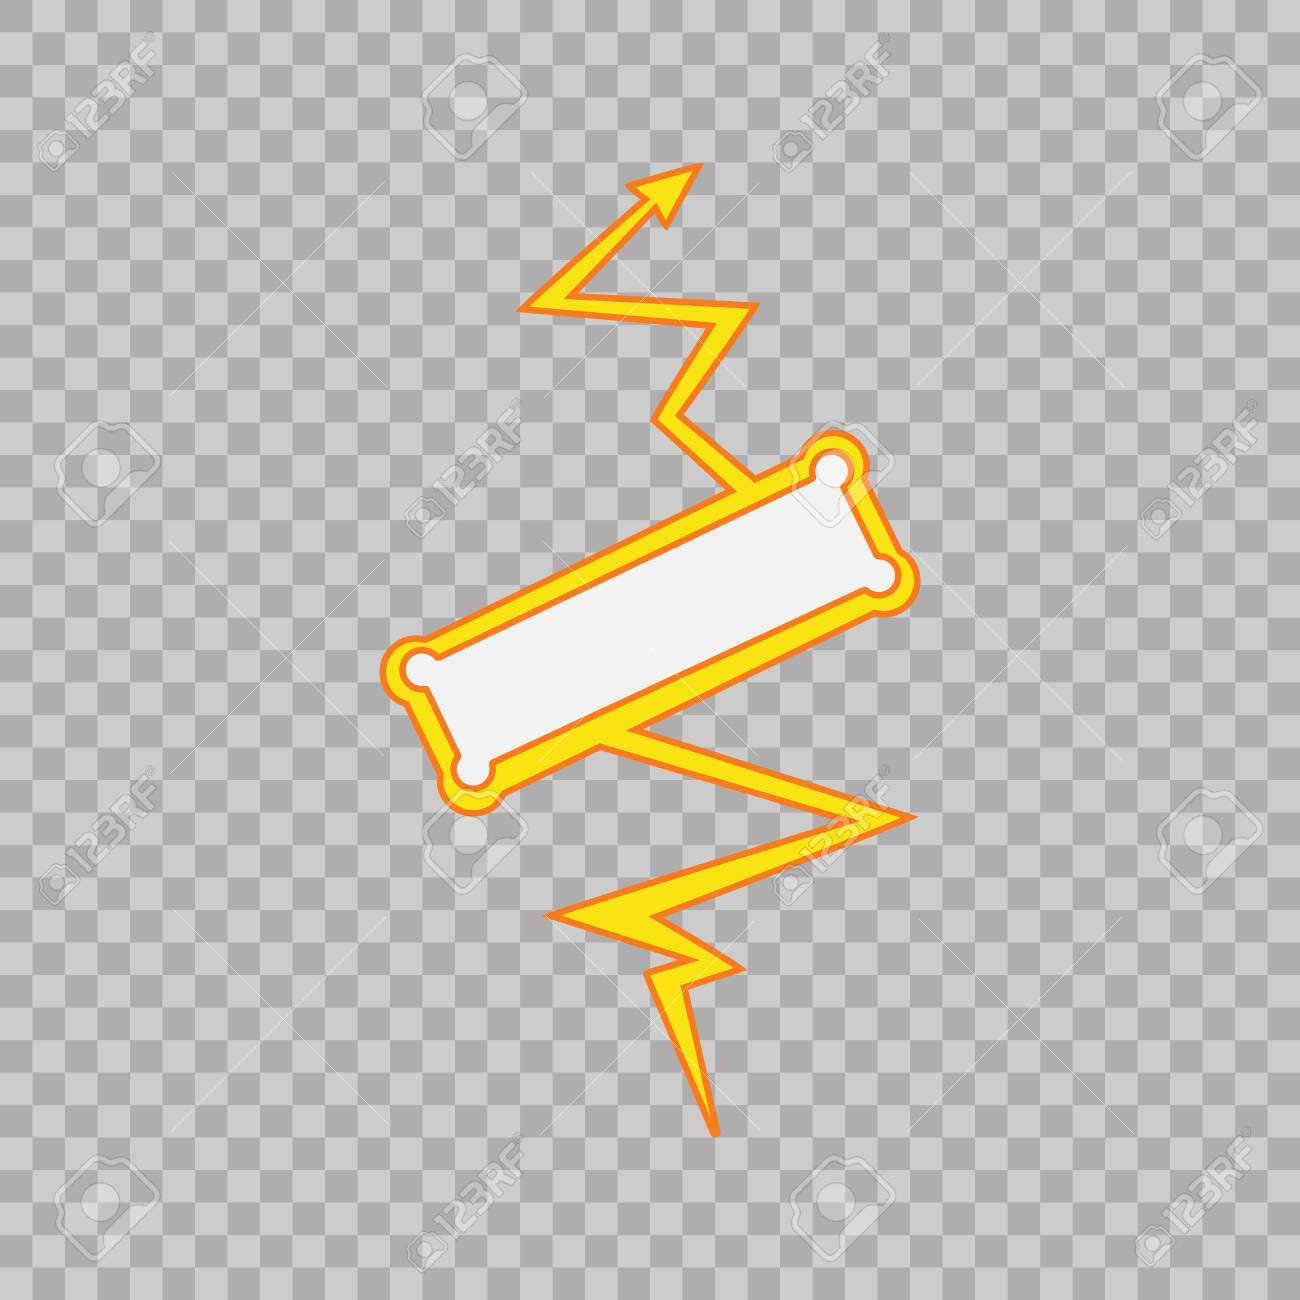 Thunderbolt sign on tranparent background vector superhero sign thunderbolt sign on tranparent background vector superhero sign flash icon color flat vector buycottarizona Image collections